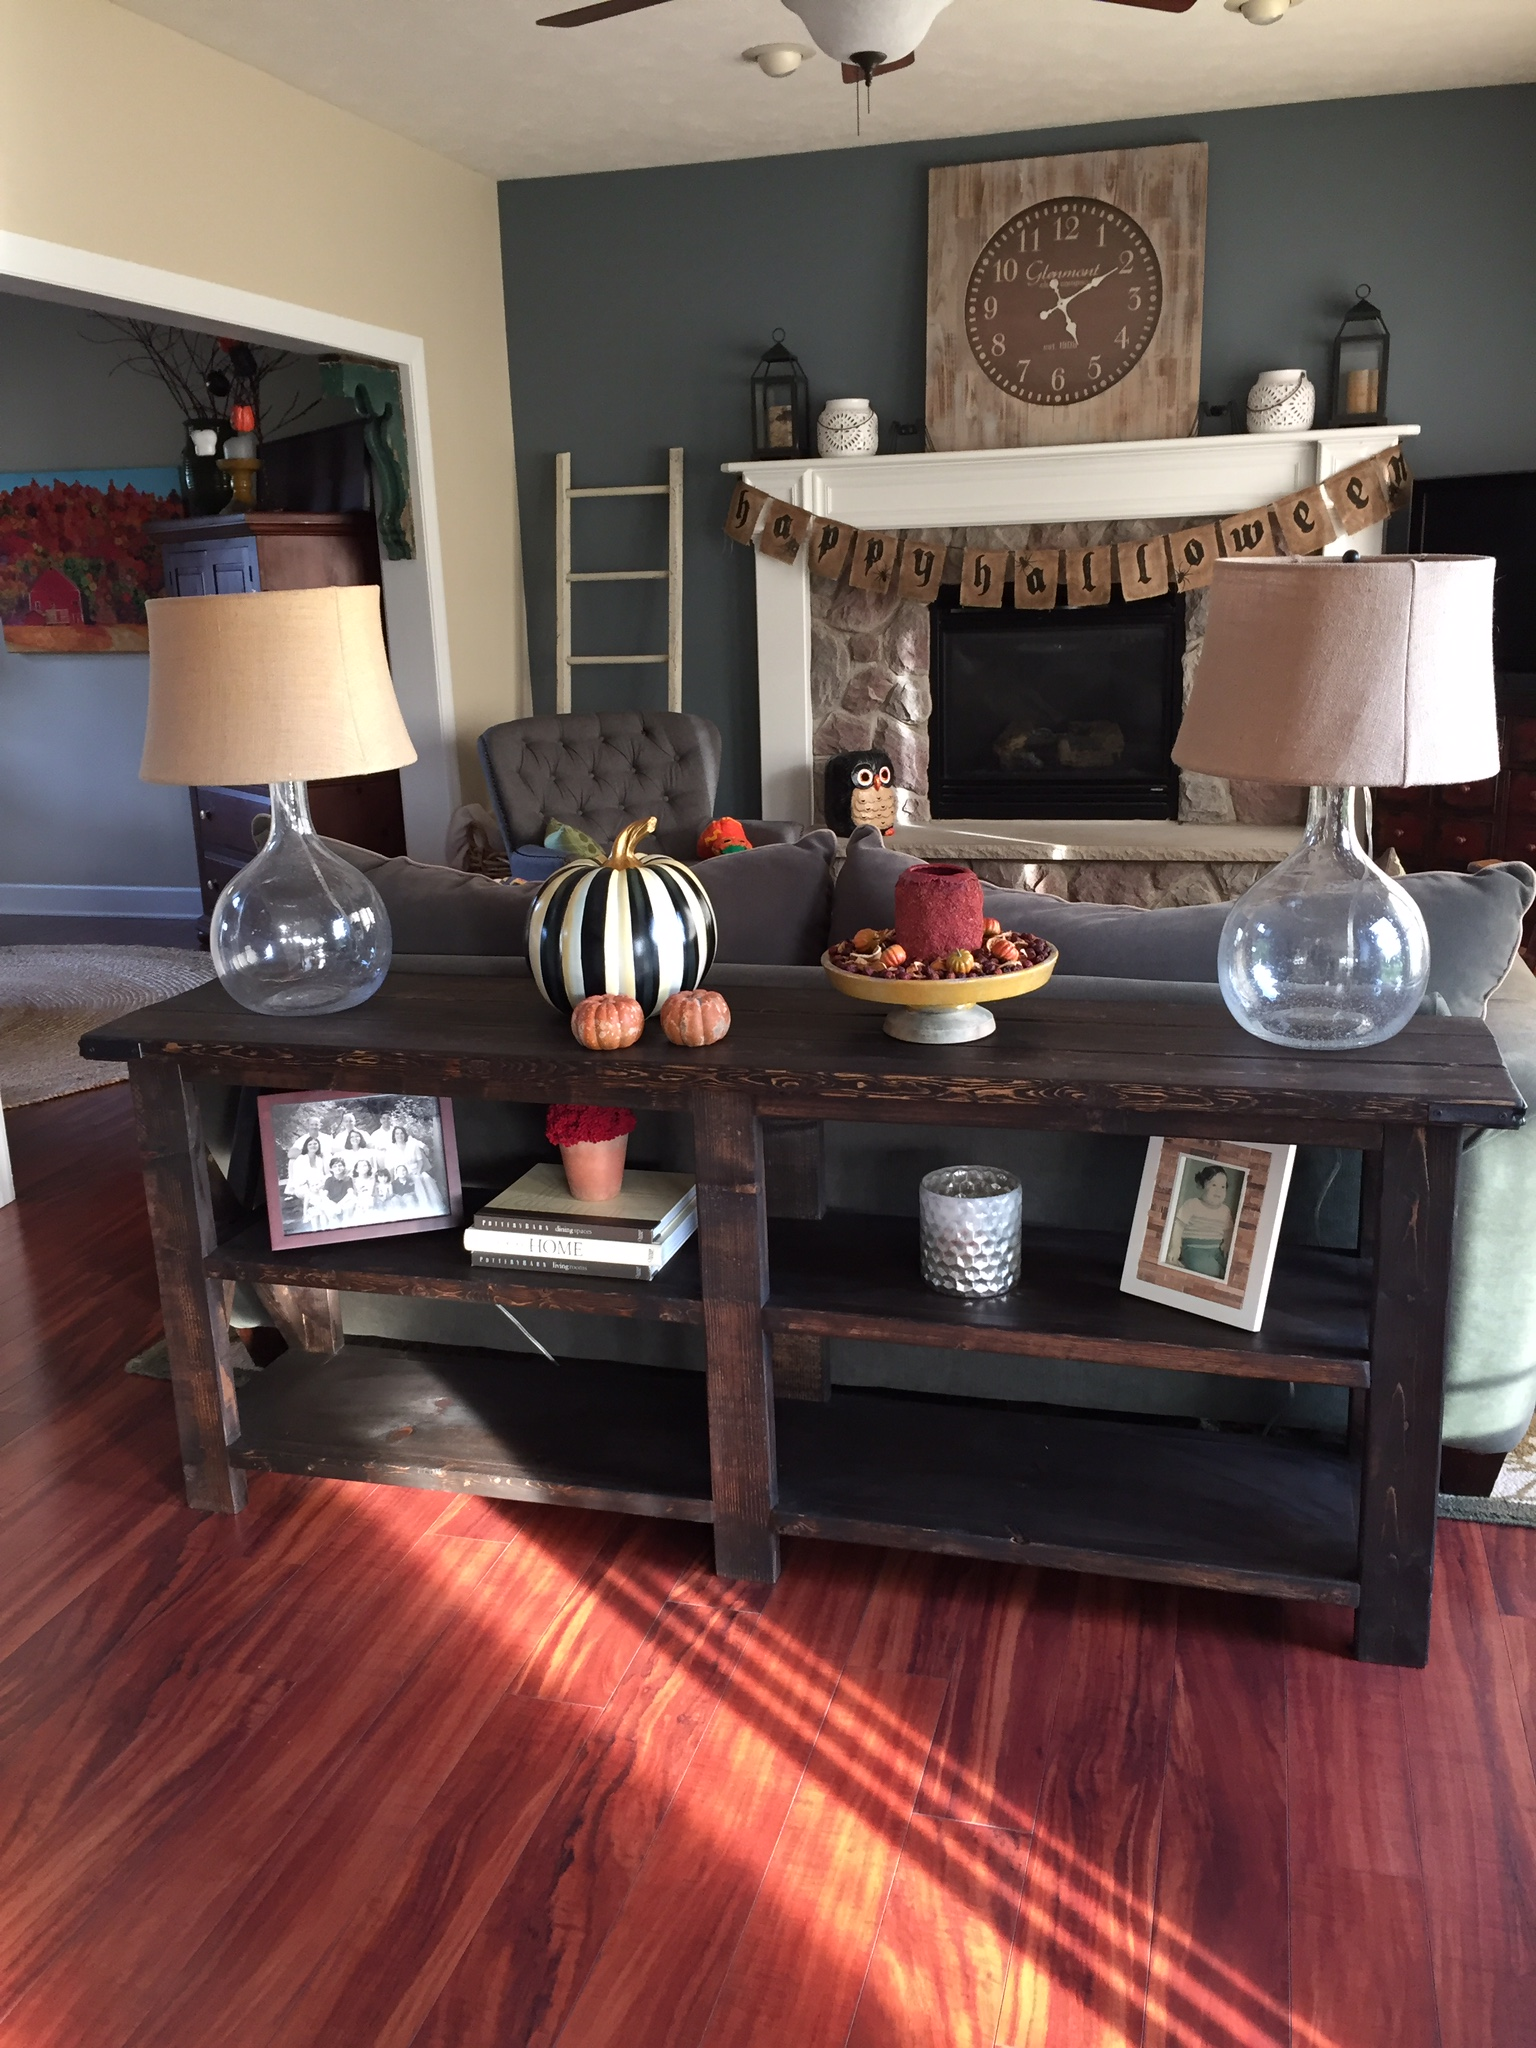 My First Furniture Build All Prettied Up For Fall.